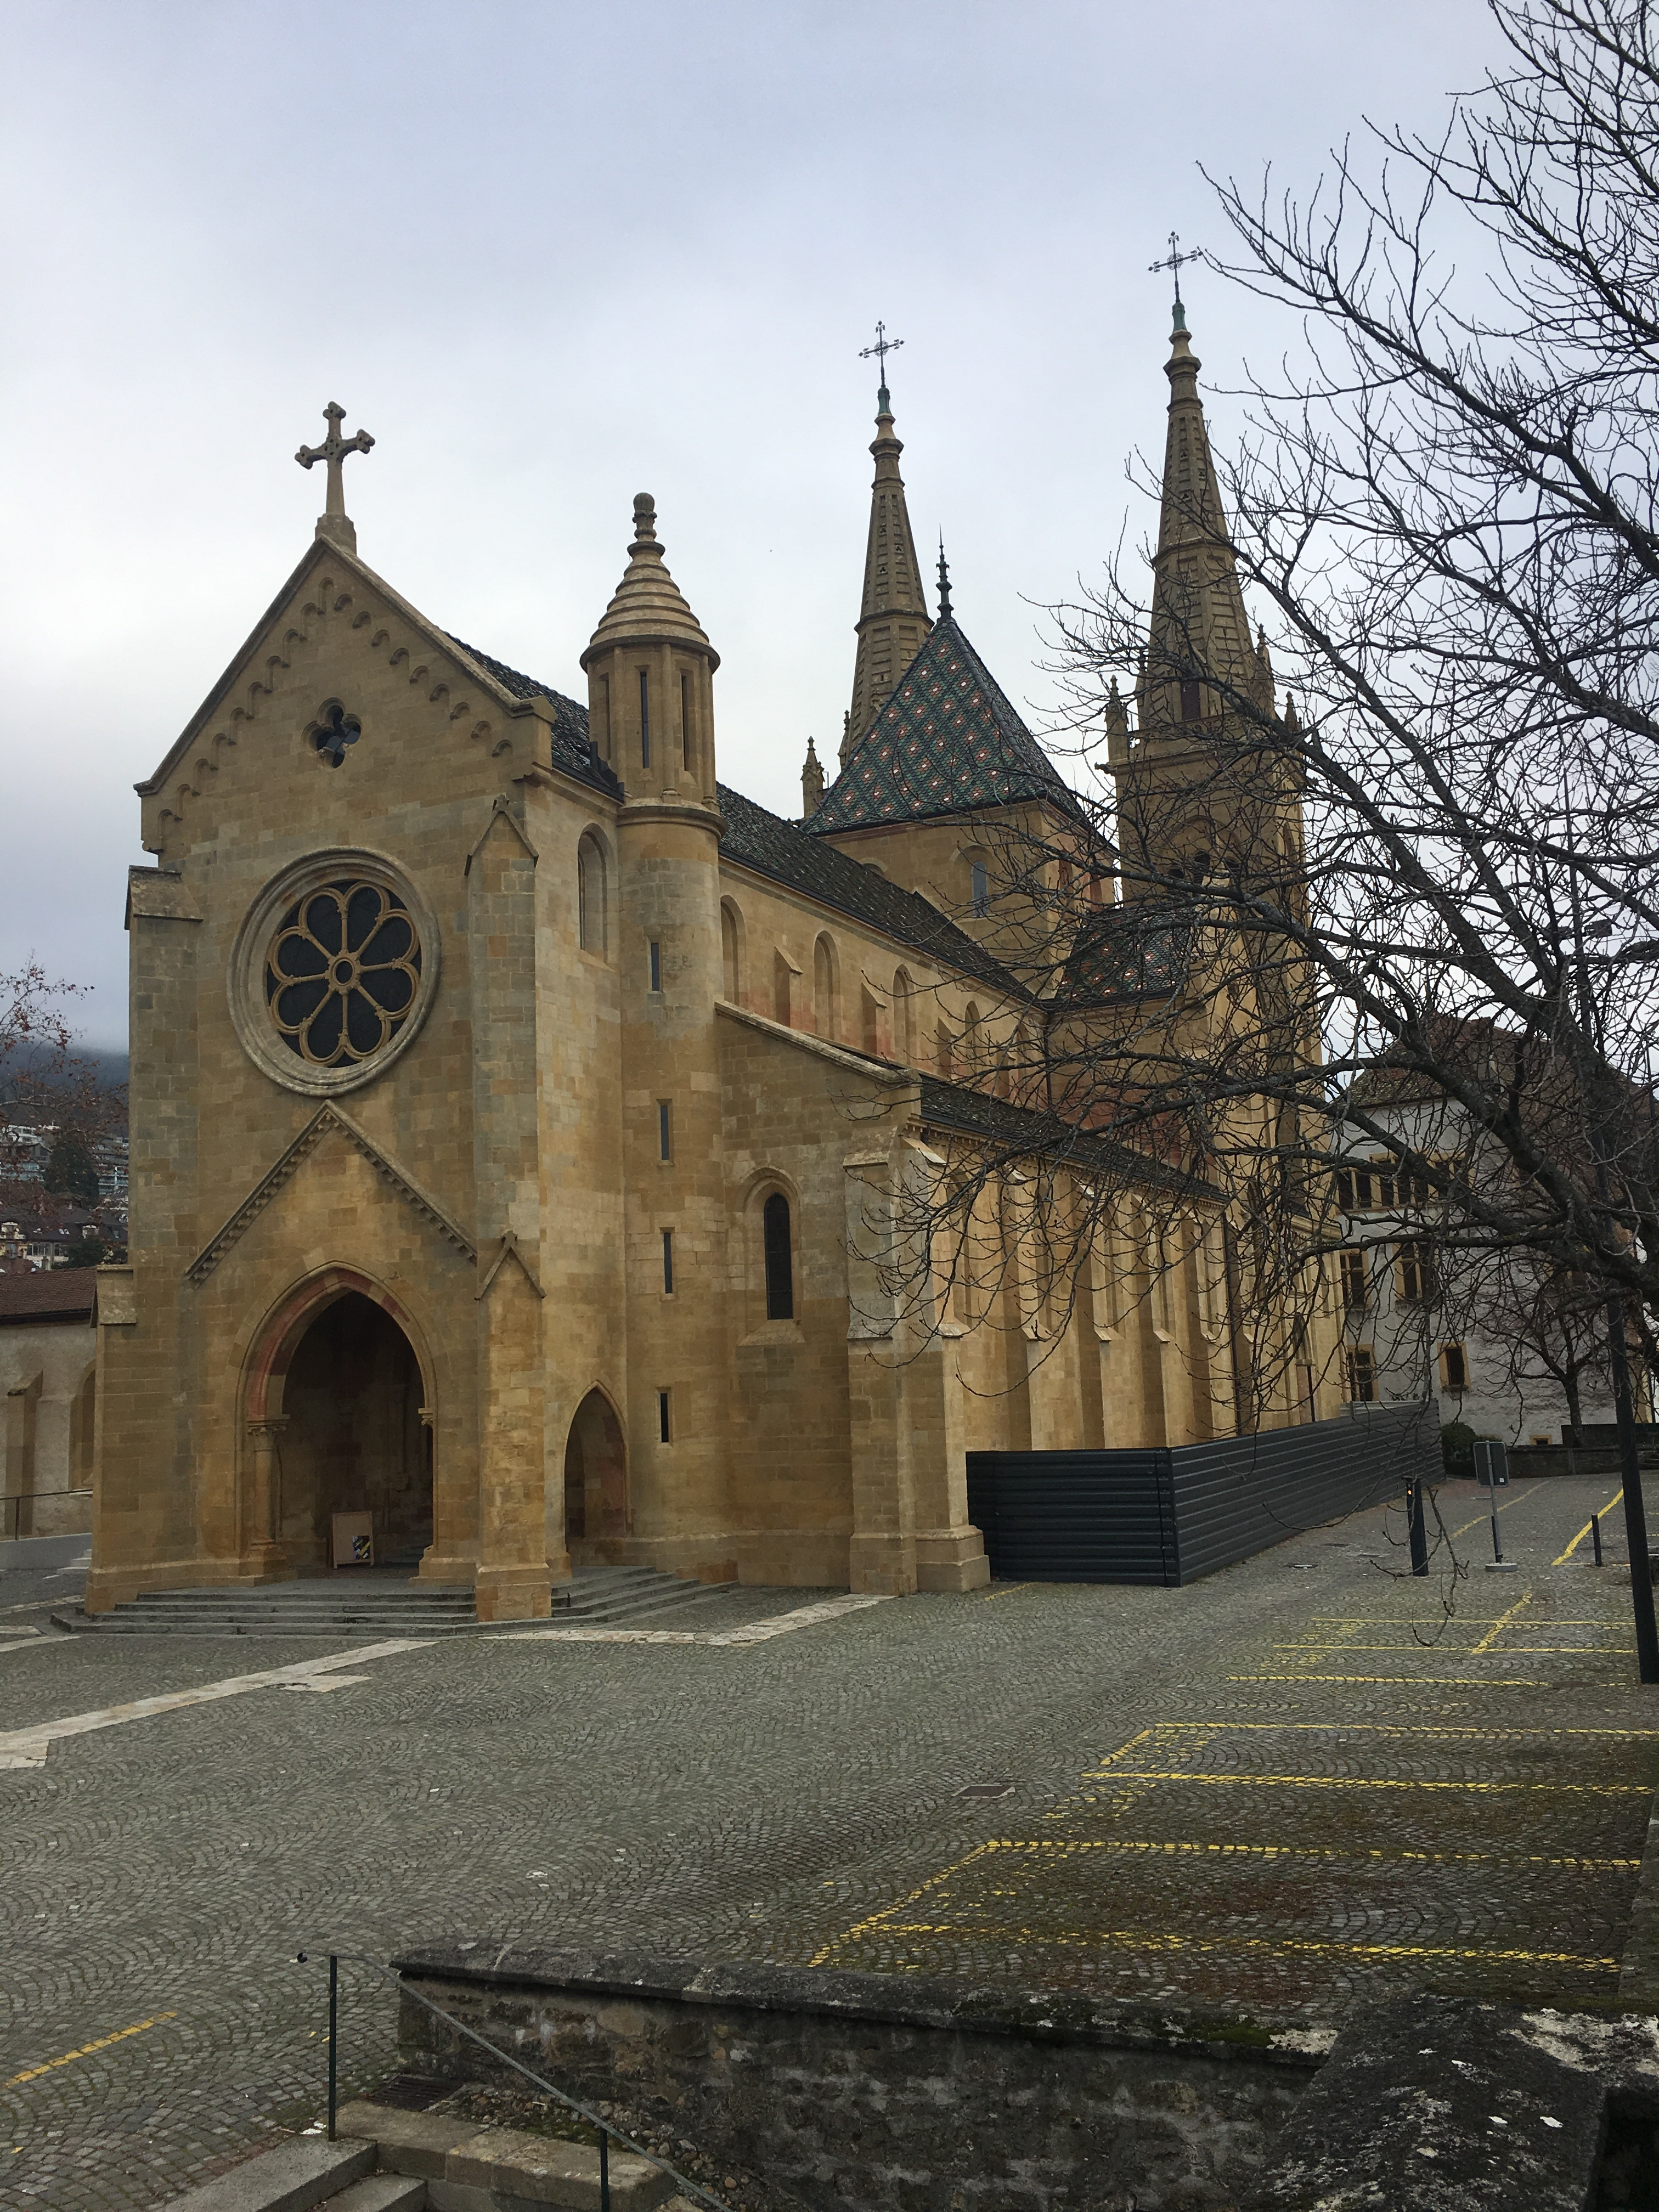 Neuchatel Cathedral adjacent to the castle in the old town.